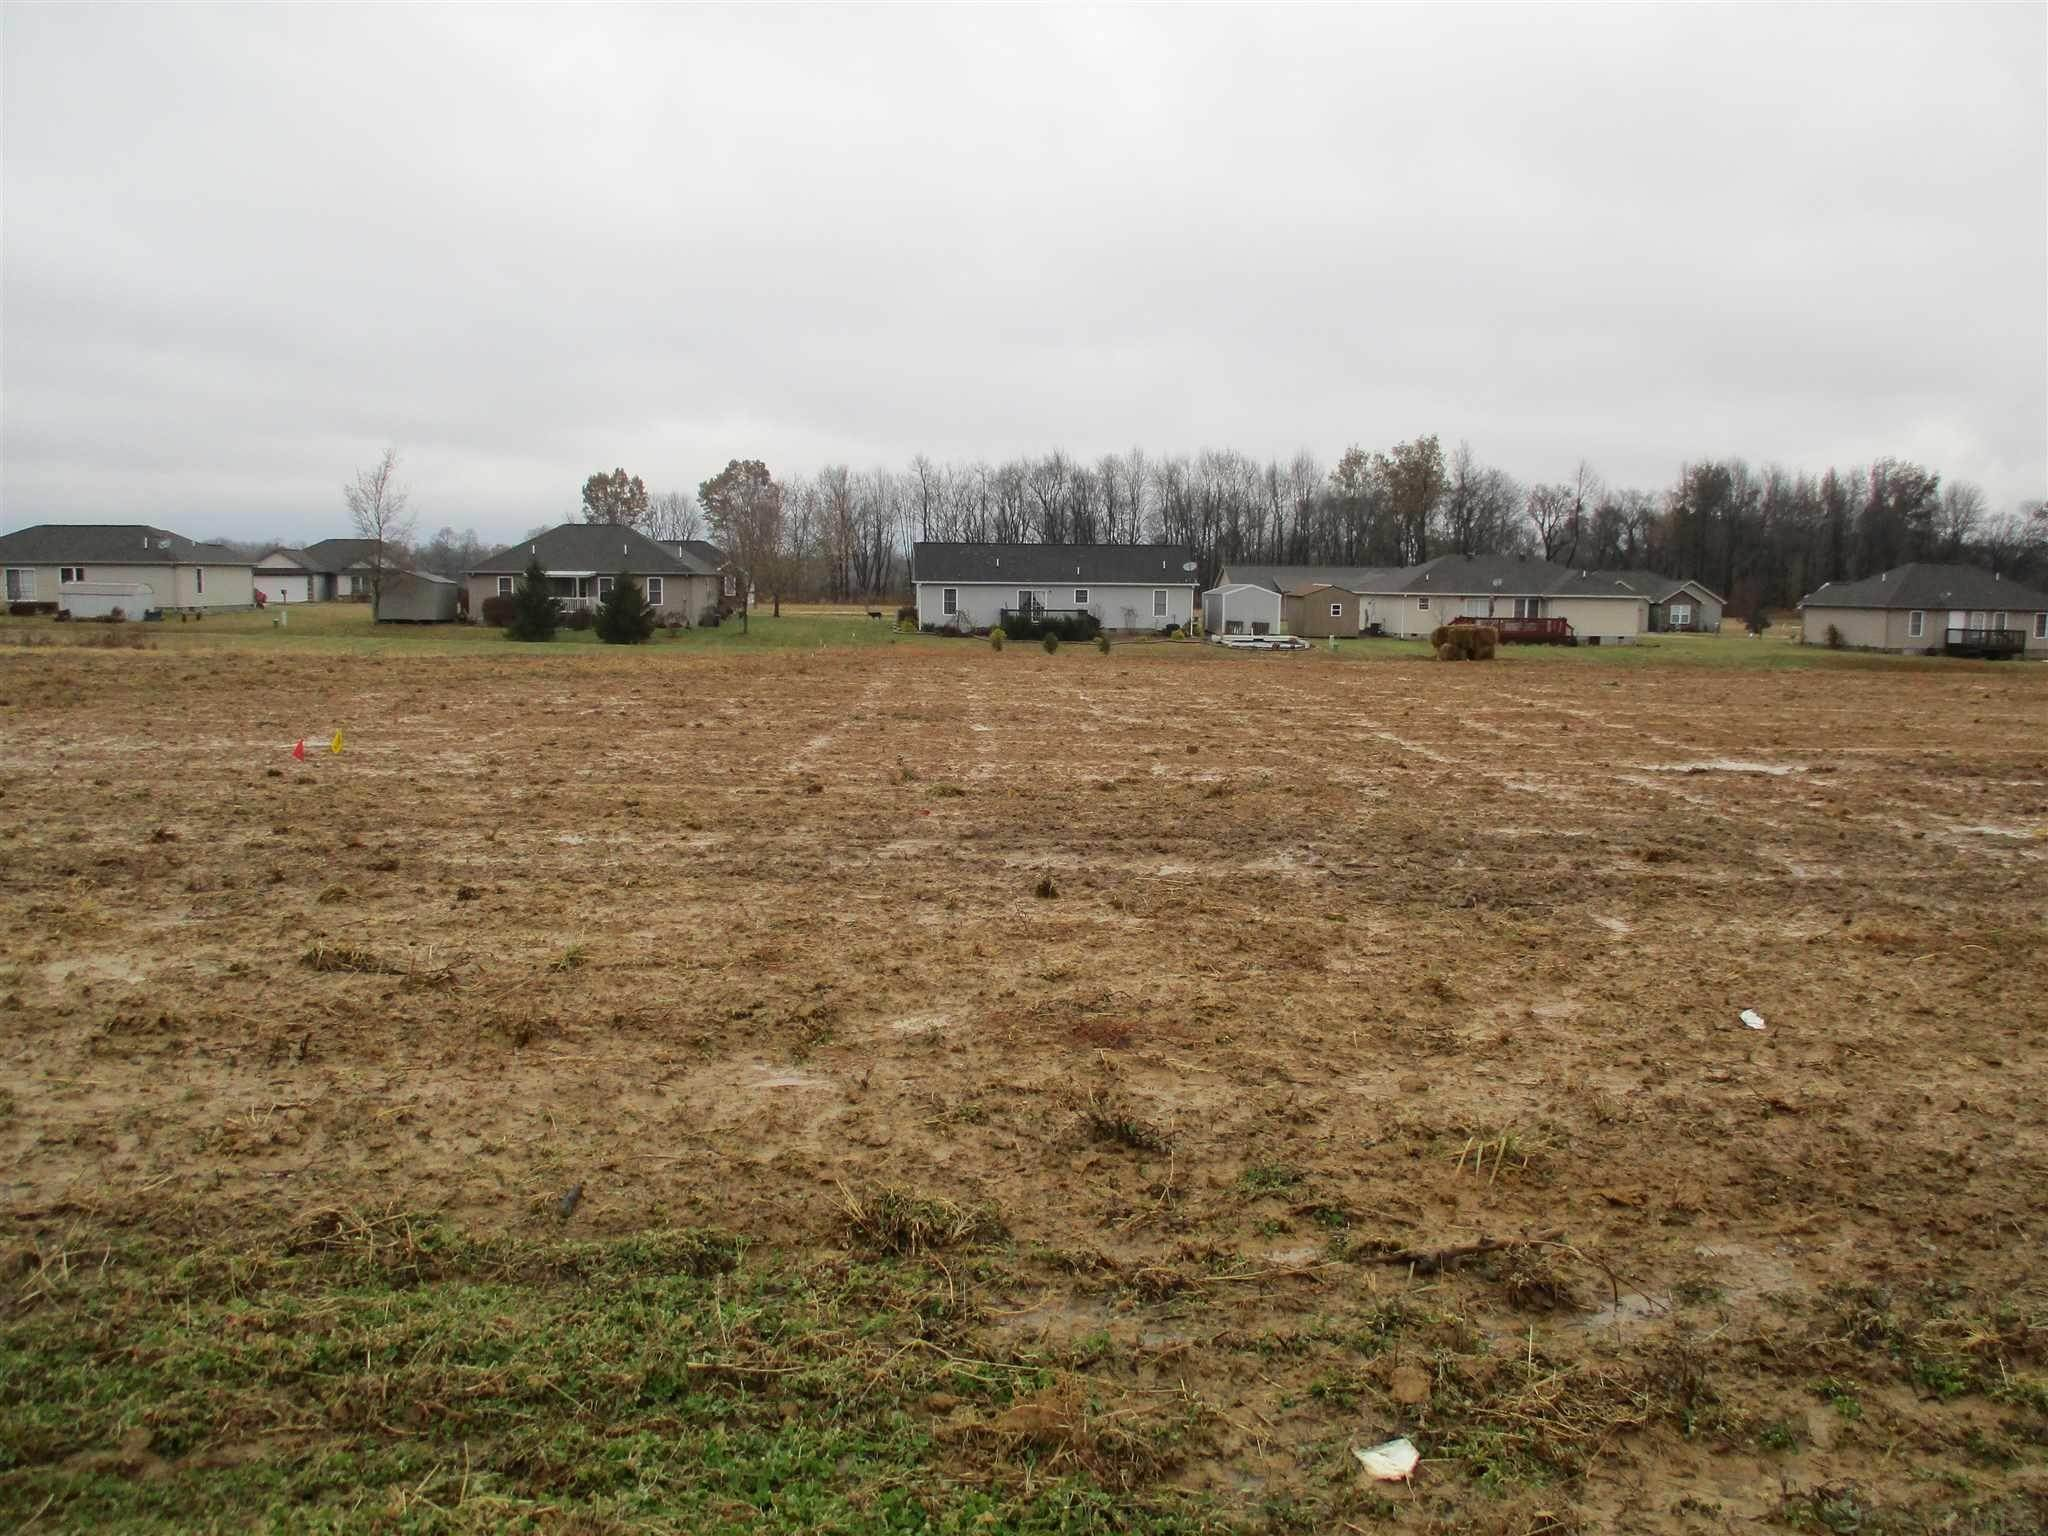 Residential Lots & Land for Sale at W Washington Street Rockport, Indiana 47635 United States